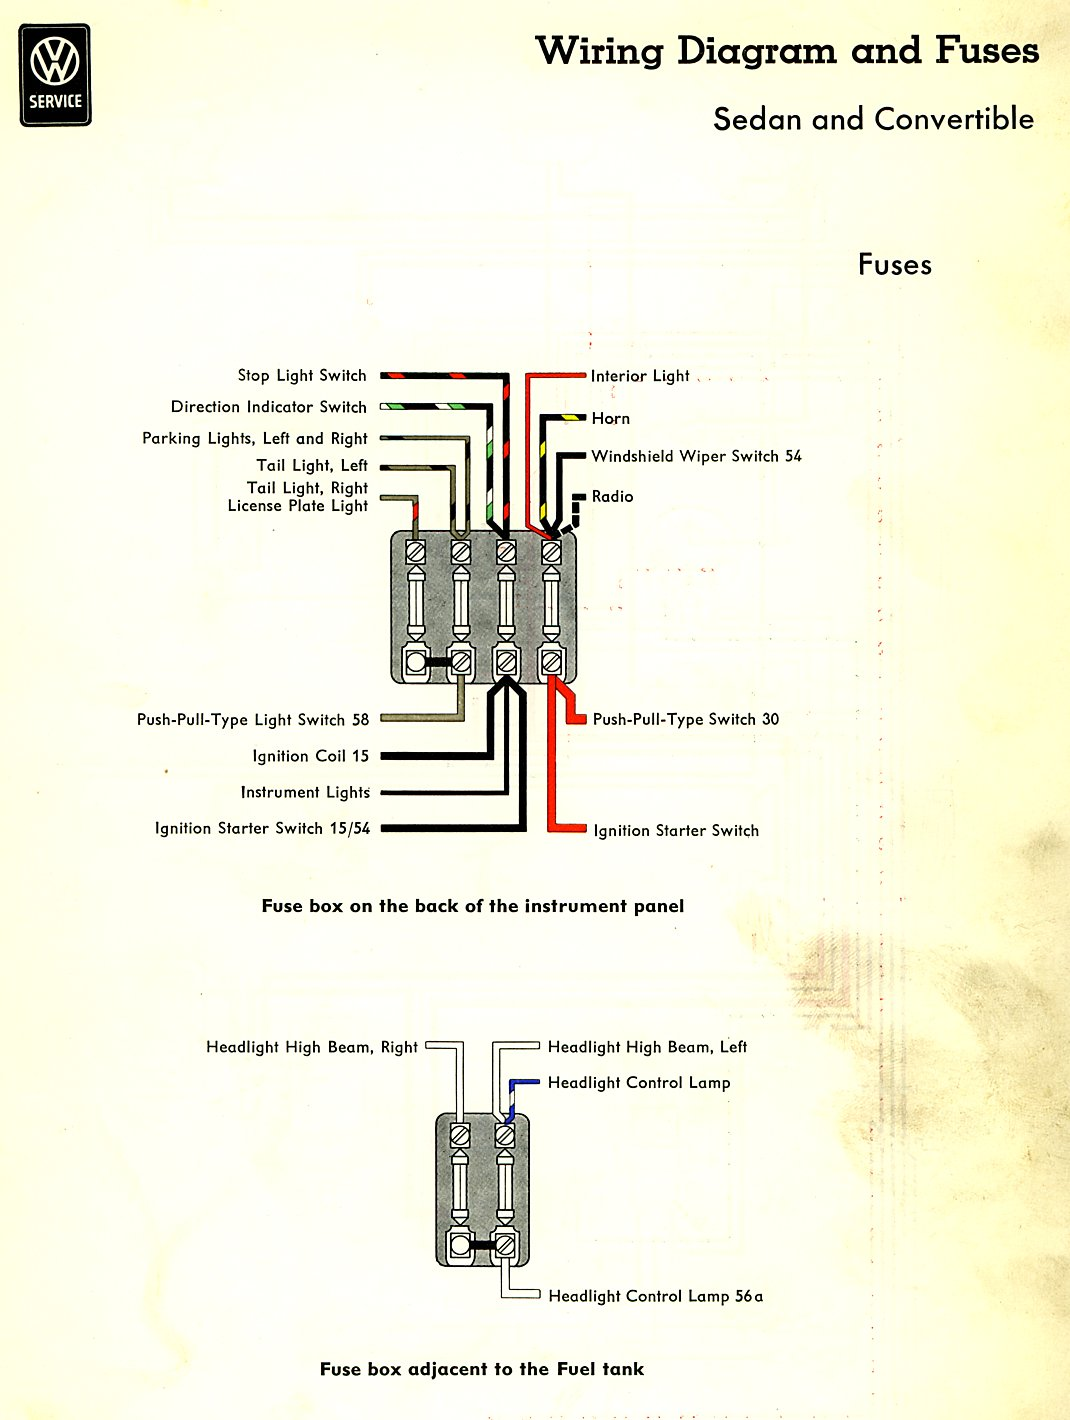 58 Vw Beetle Wiring Diagram Data Volkswagen Fuse Thesamba Com Type 1 Diagrams 1958